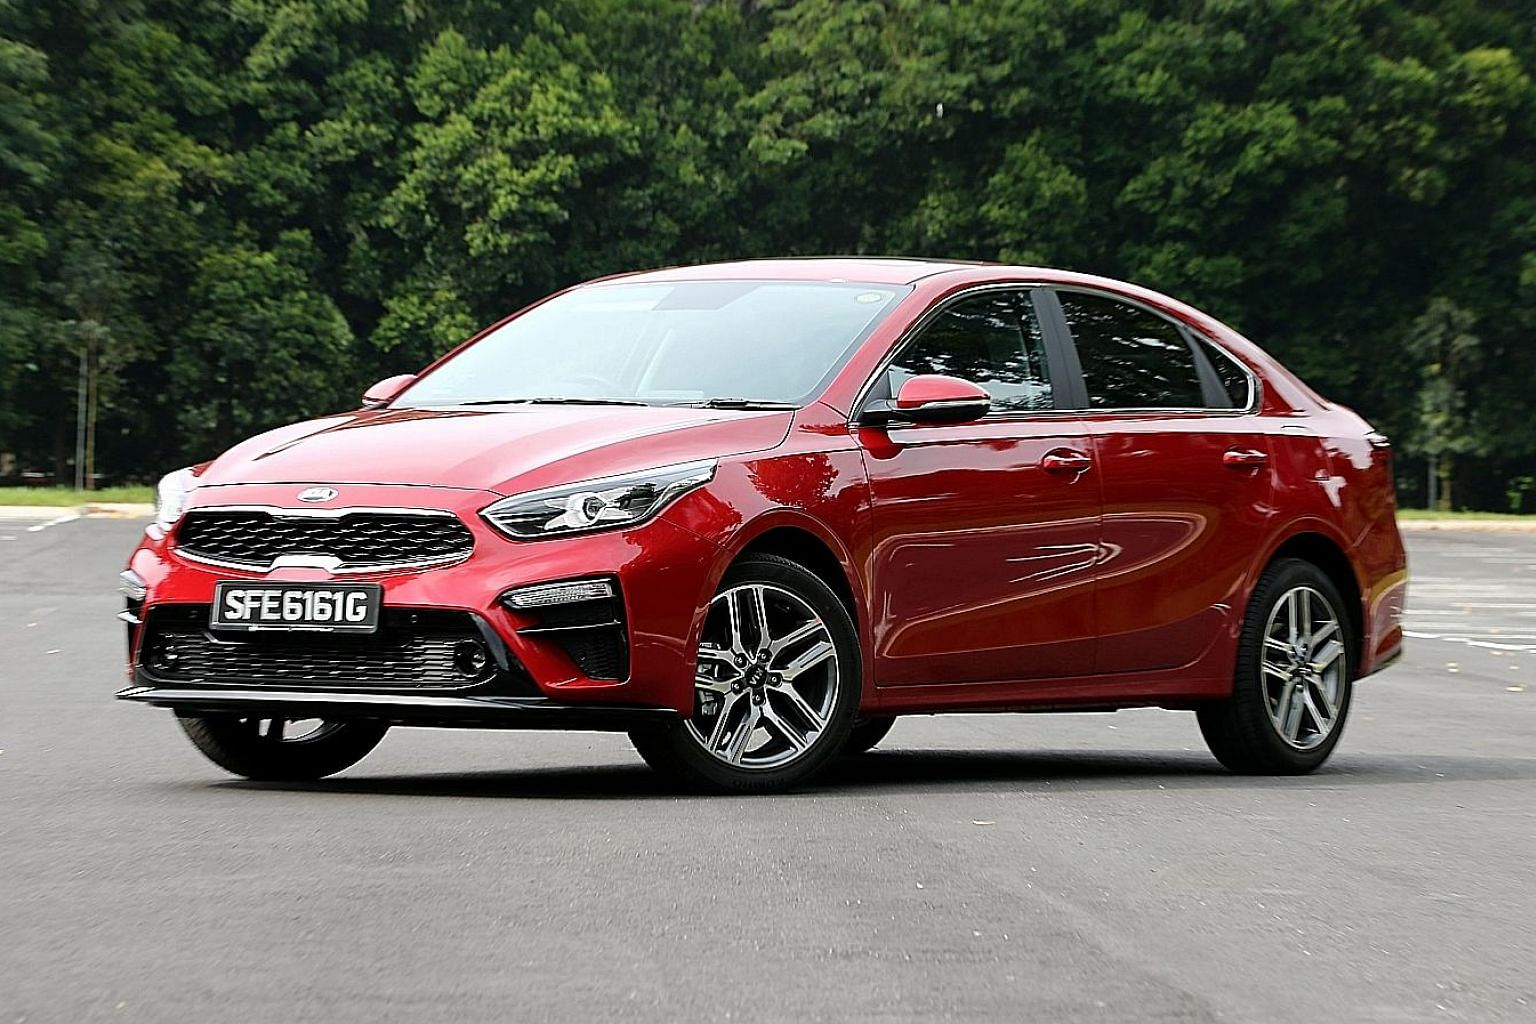 The Kia Cerato's boot offers 502 litres of stowage, which is equivalent to what some larger rivals pack.